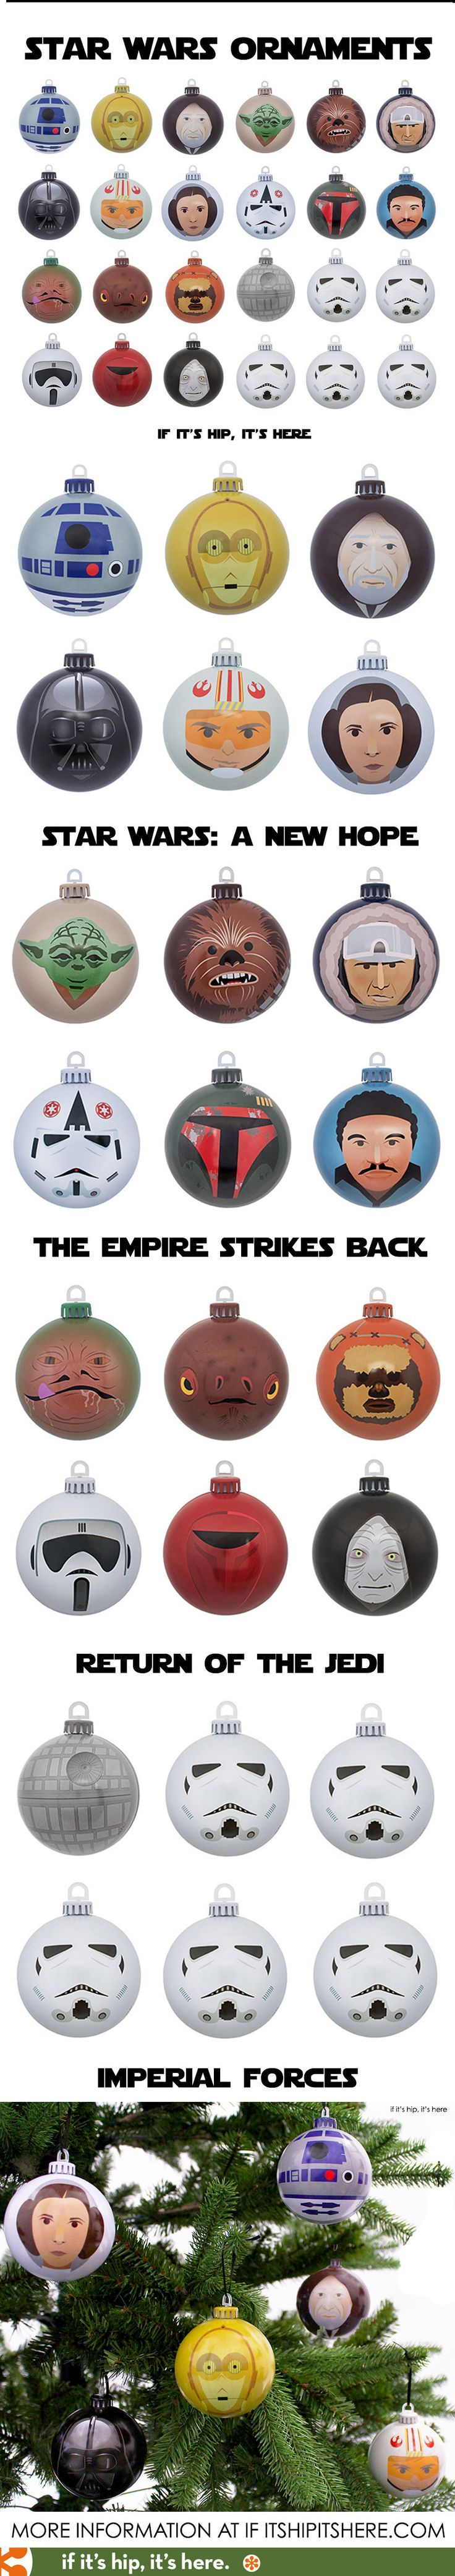 Finally! Star Wars Christmas ornaments with Design Appeal! #starwars...